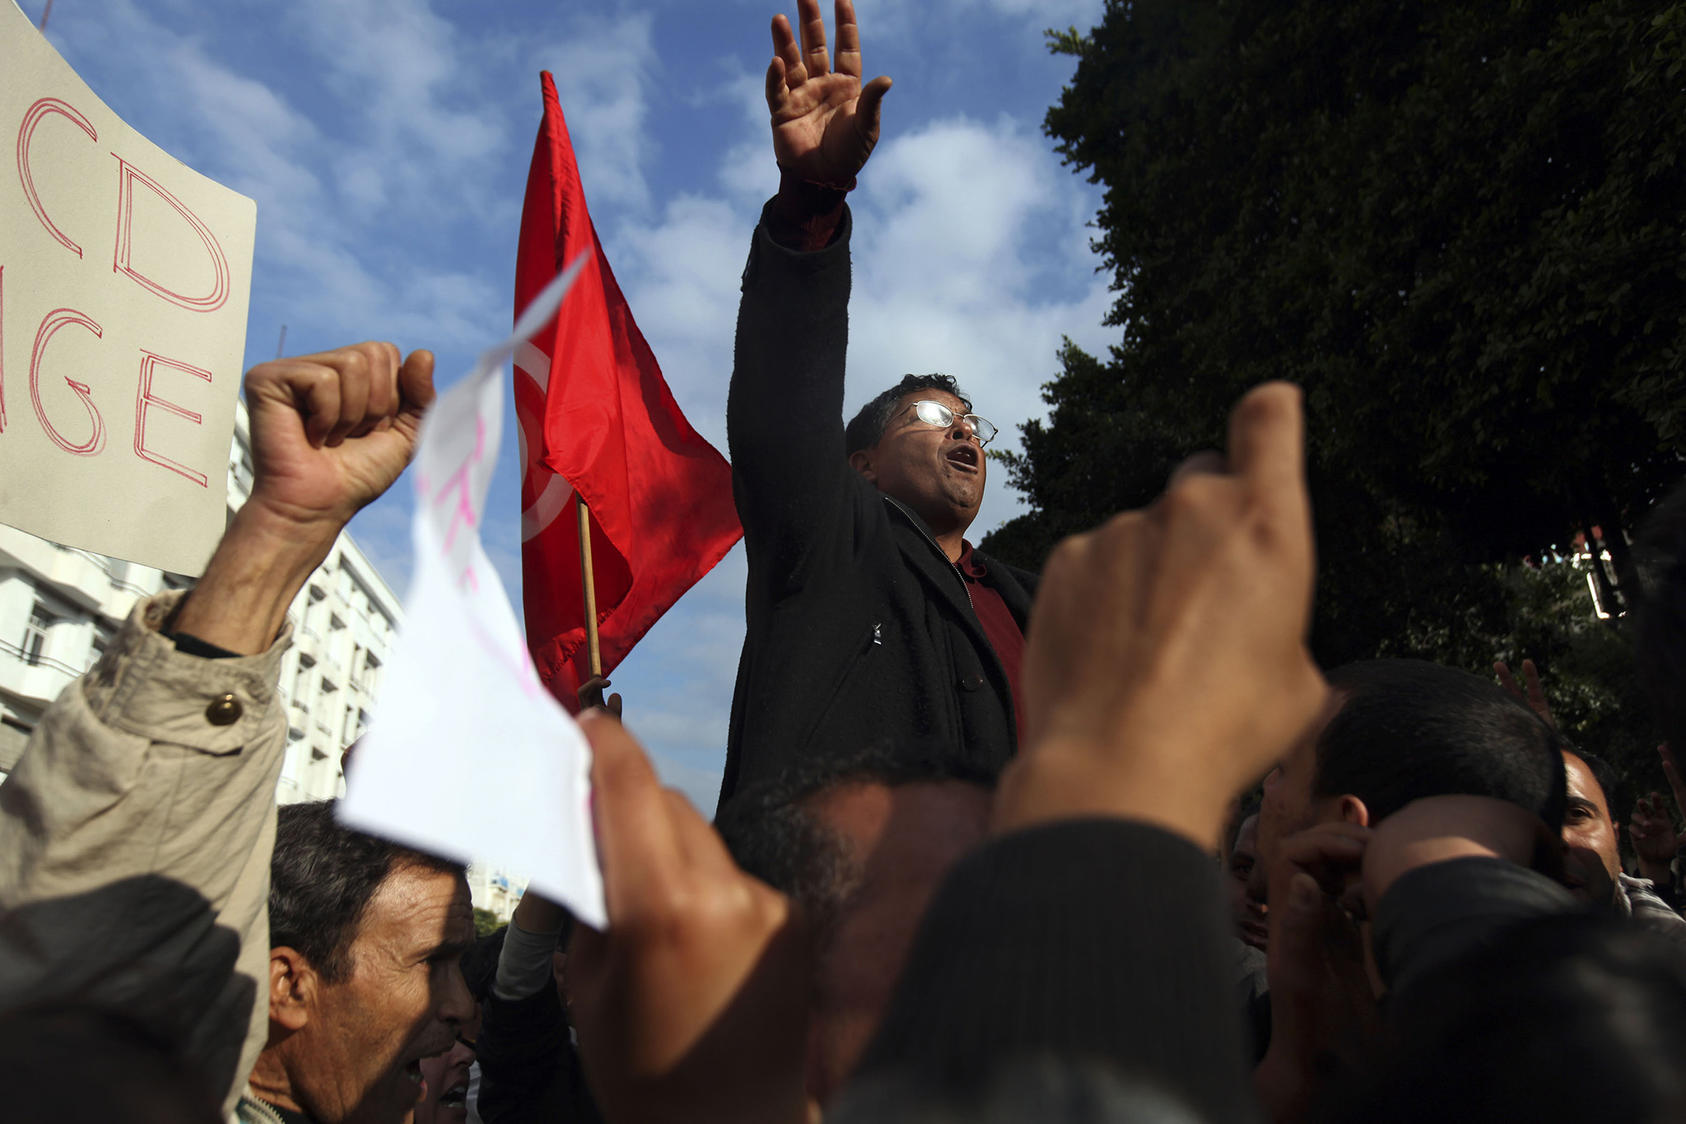 Demonstrators sing the Tunisian National Anthem during a protest in Tunis, Tunisia, Jan. 19, 2011. (Holly Pickett/The New York Times)